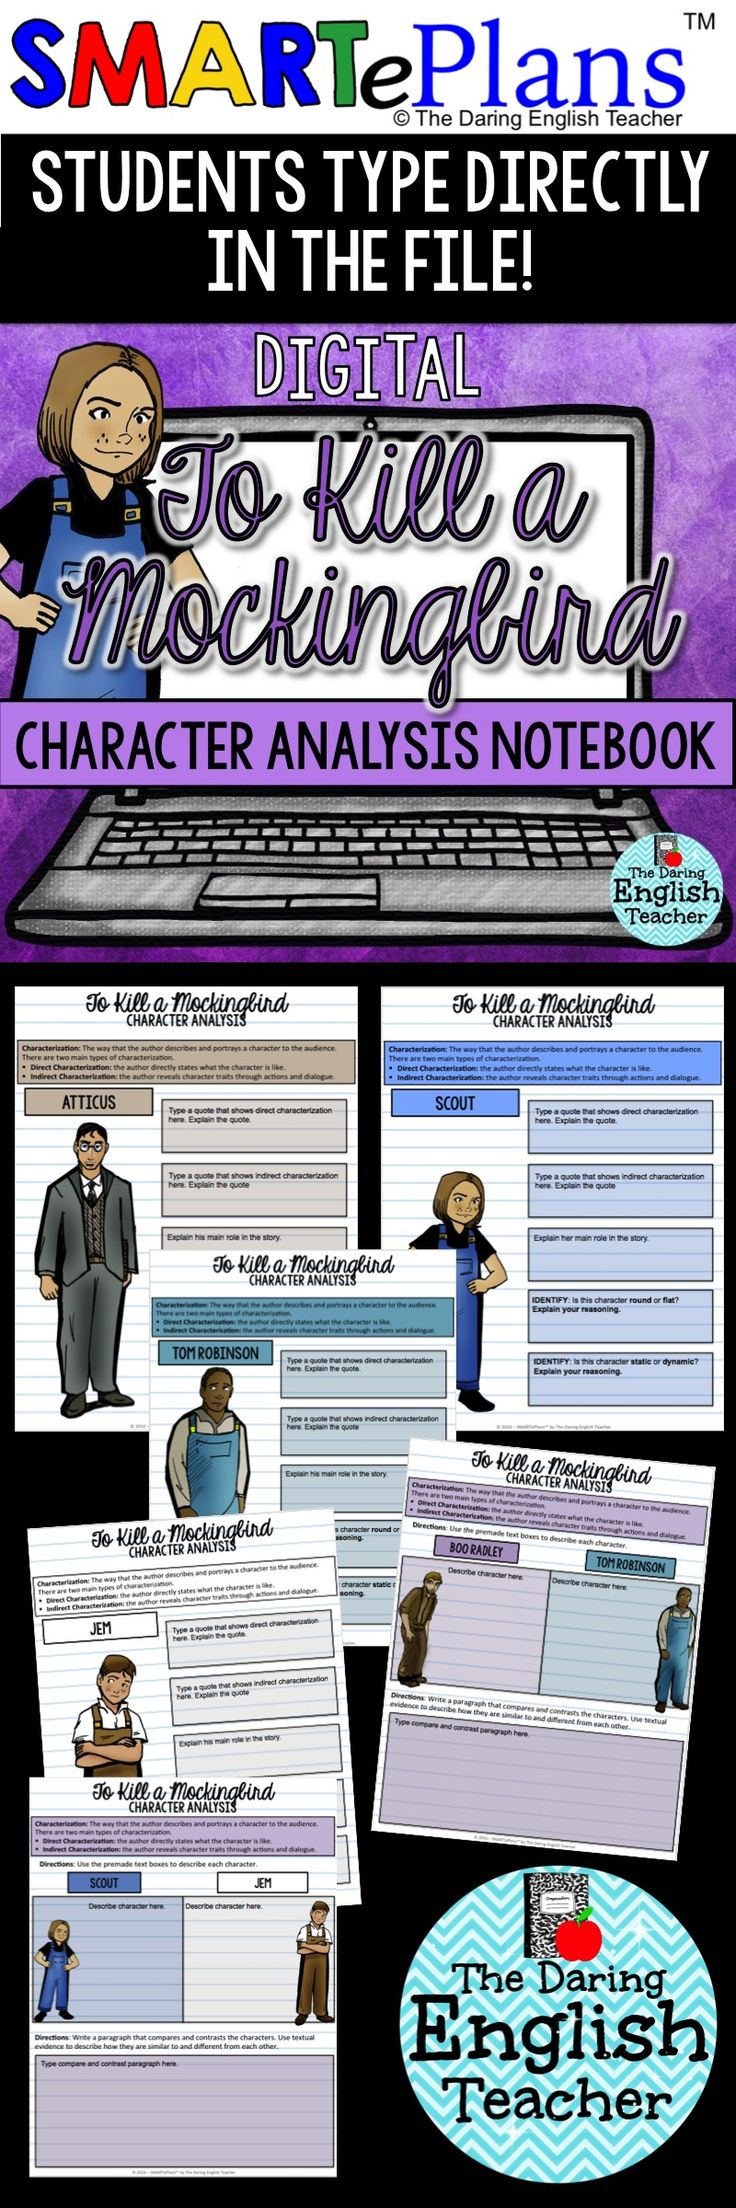 Digital To Kill a Mockingbird character analysis notebook for Google Drive. Analyze each main character in Harper Lee's novel To Kill a Mockingbird. This activity is perfect for the digital or 1:1 high school English classroom.